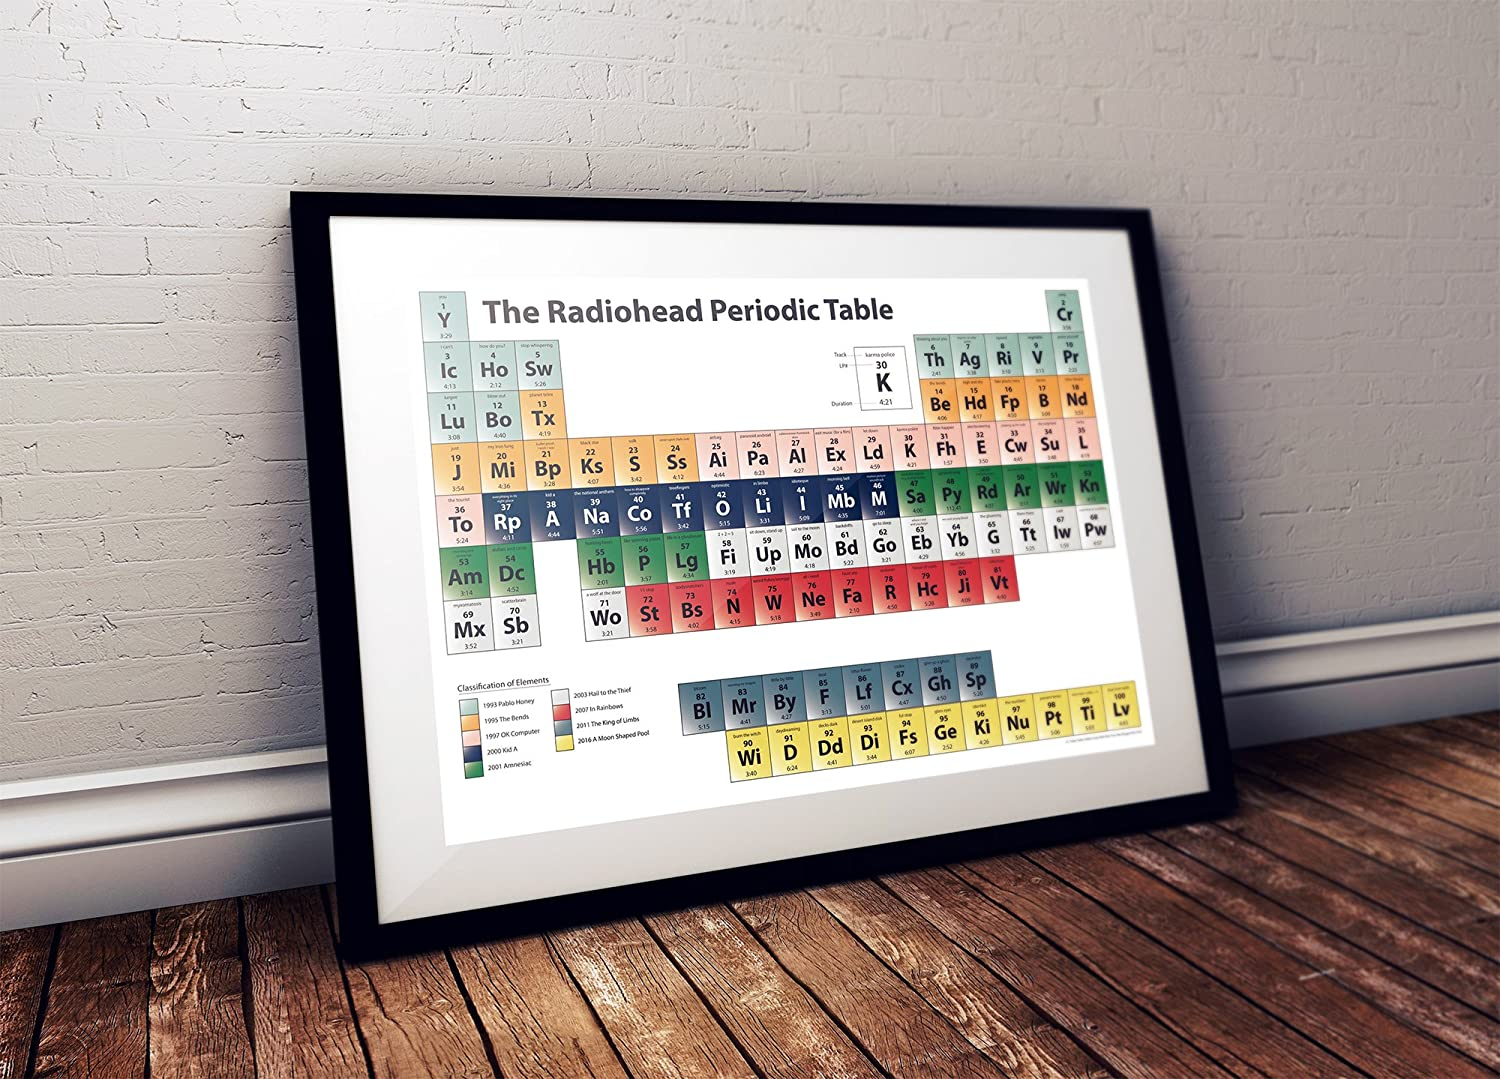 Sl periodic table images periodic table images radiohead poster the radiohead periodic table 33 x 24 radiohead poster the radiohead periodic table 33 gamestrikefo Images